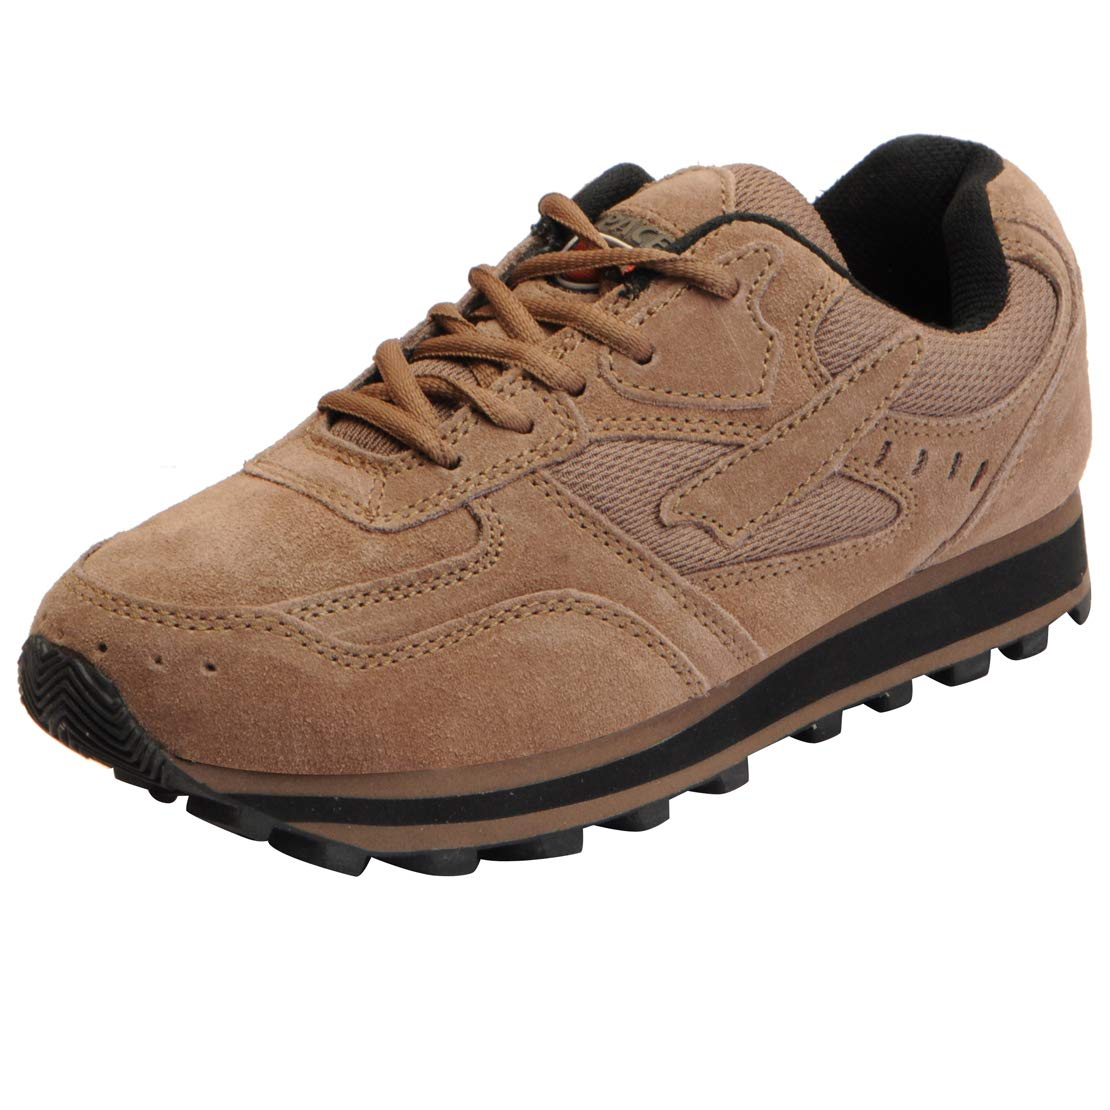 d2de965b31 Lakhani Pace Men's Suede Leather Sports Jogging Shoes: Buy Online at Low  Prices in India - Amazon.in